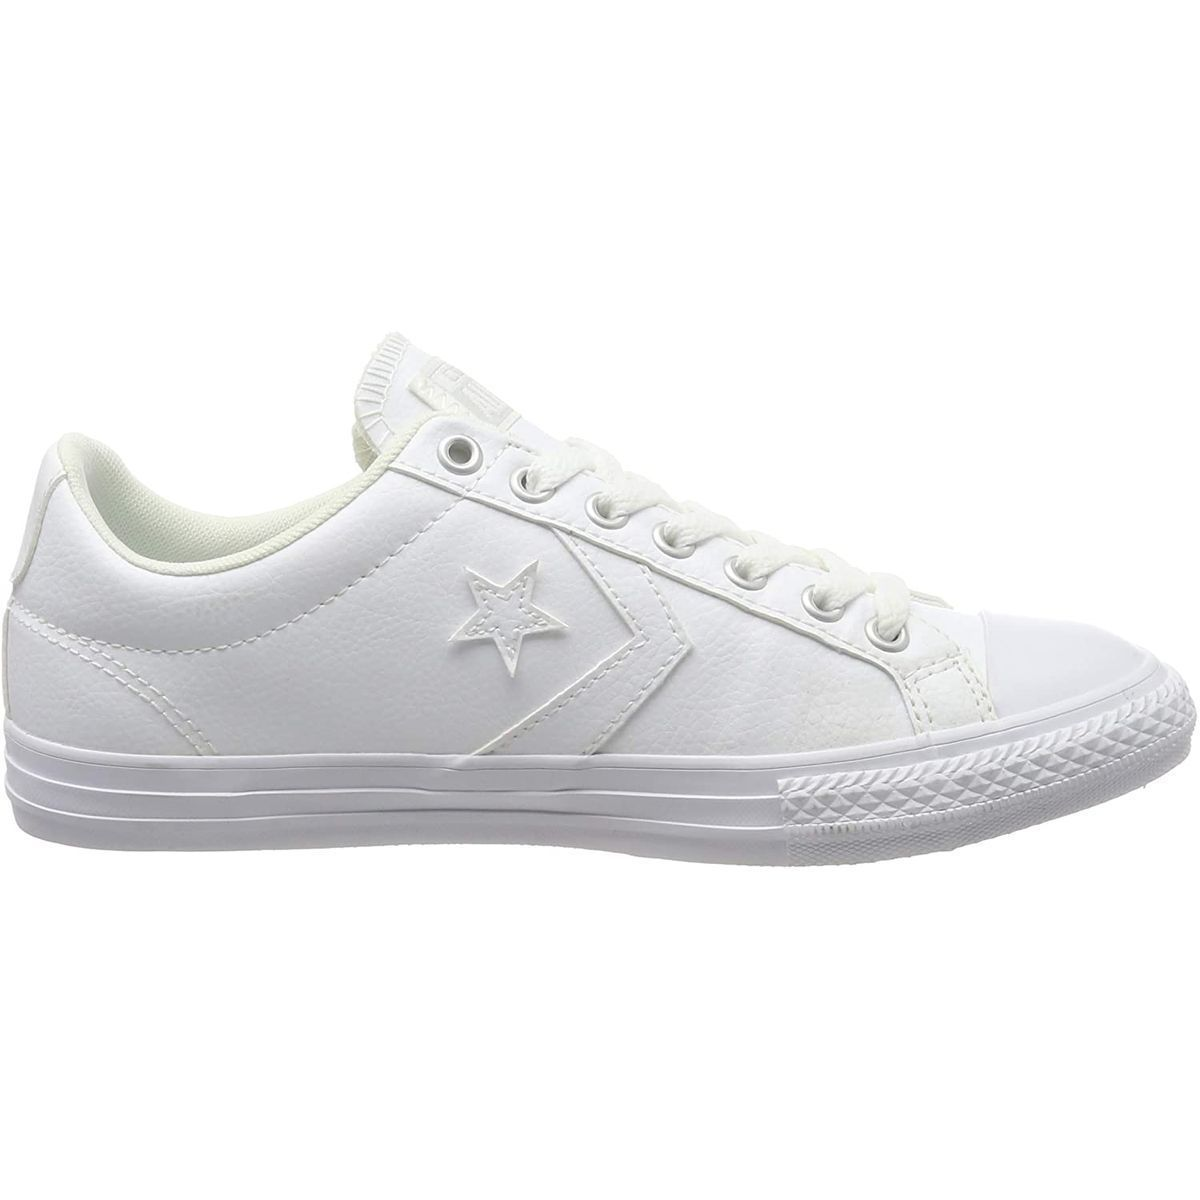 CONVERSE STAR PLAYER EV 2V LT